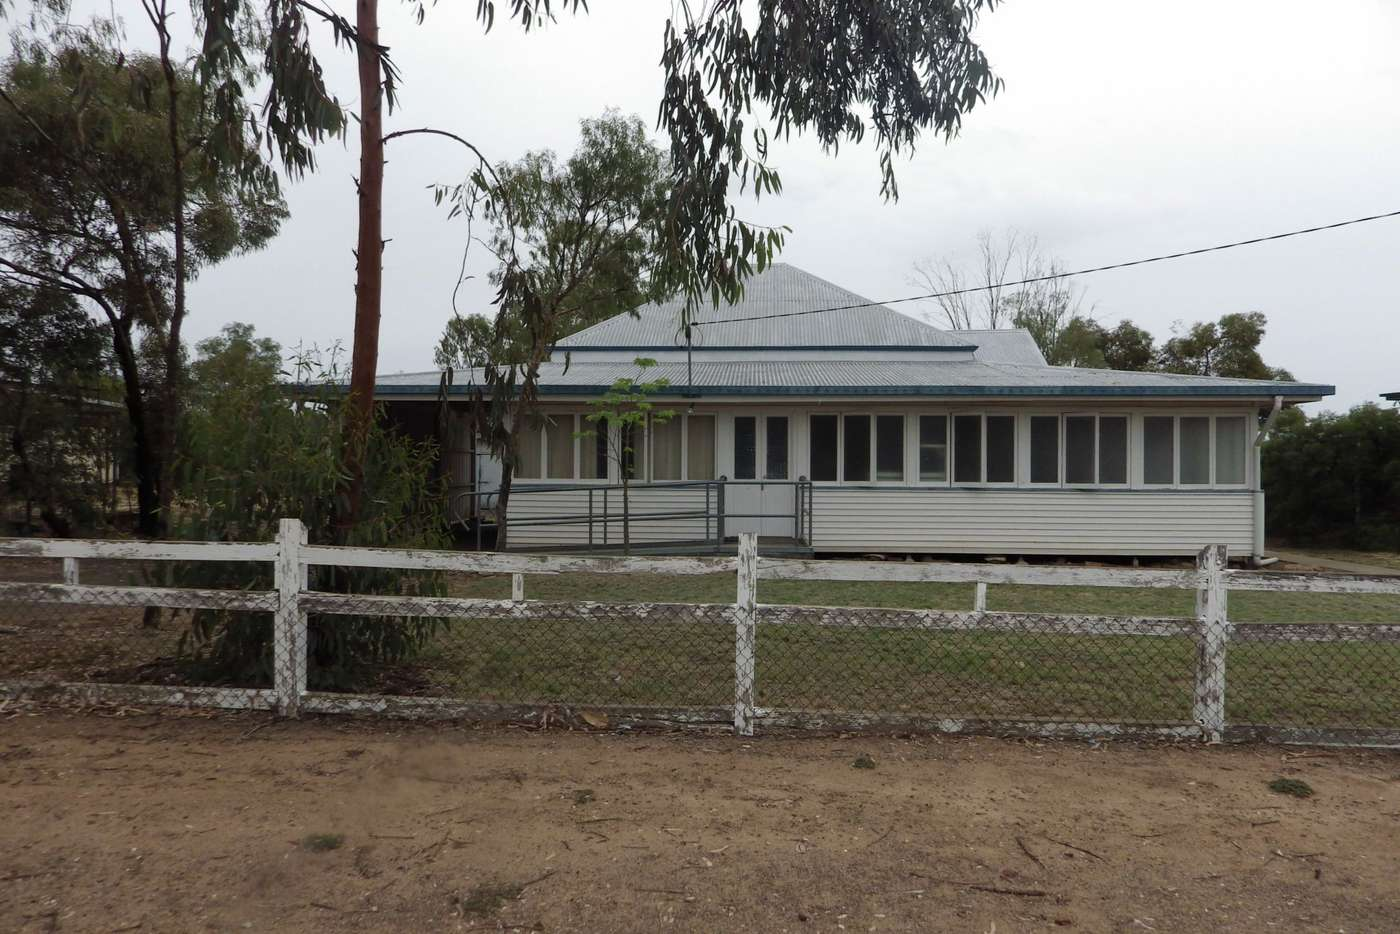 Main view of Homely house listing, 73 Bowen Street, Roma QLD 4455